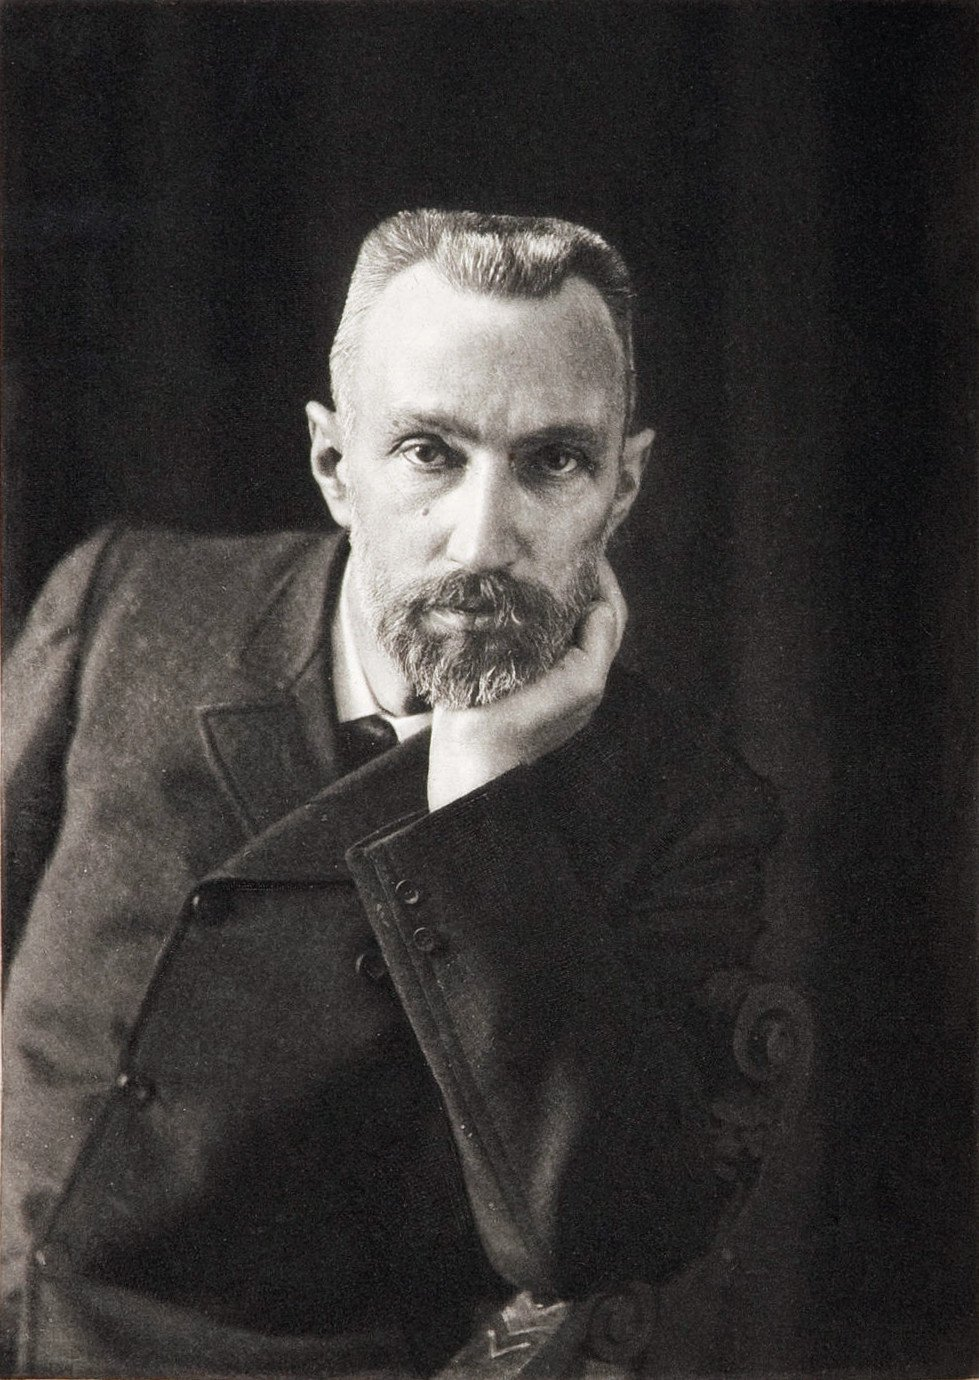 A picture of Pierre Curie taken by Dujardin in 1906, Marie Curie's husband, Nobel Prize winner - HeadStuff.org